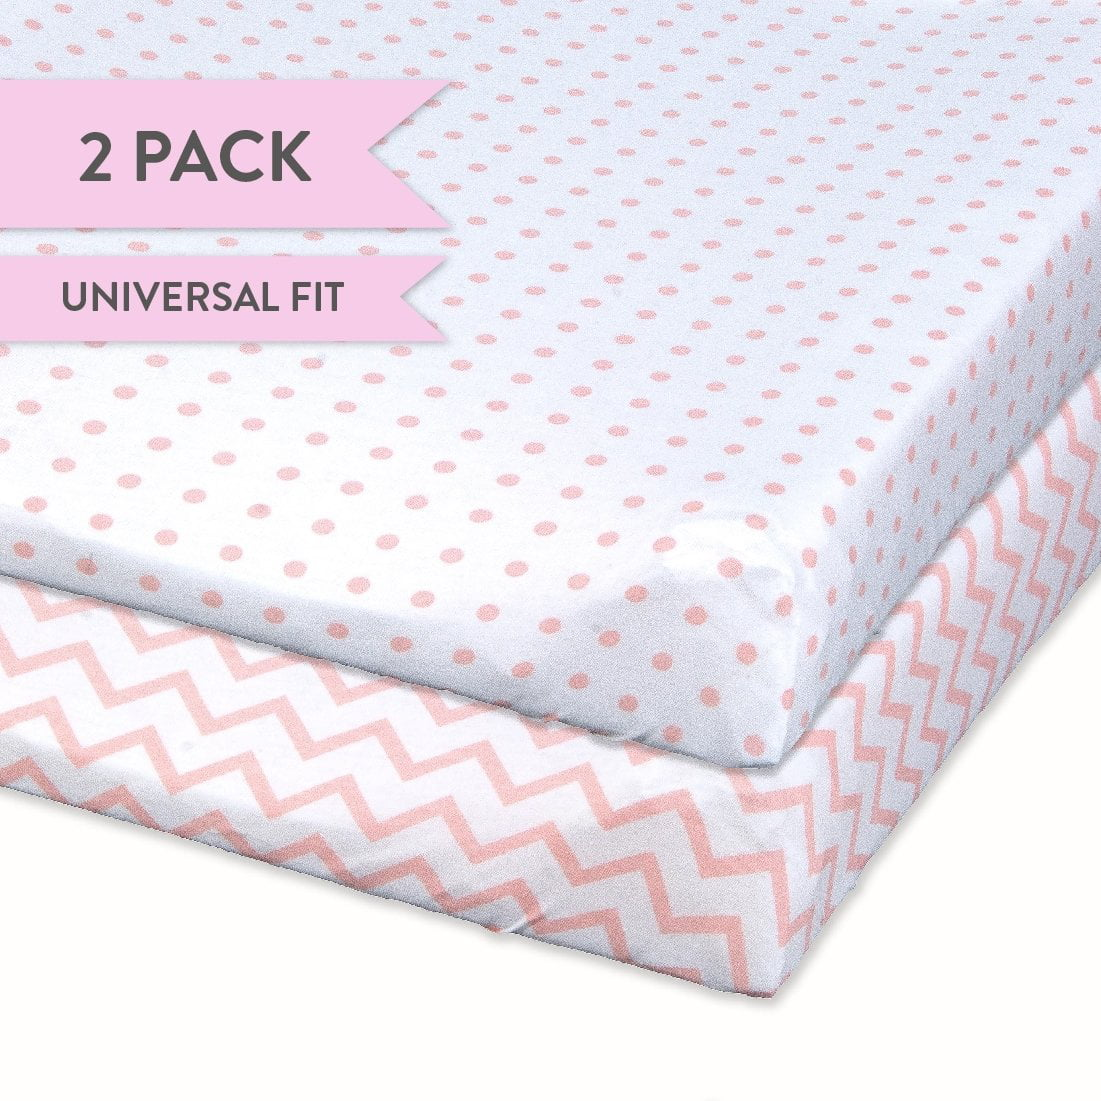 Changing Pad Cover Set   Cradle SHeet Set 100% Cotton Jersey Knit 2 Pack Pink Chevron and Polka Dots by Ely%27s %26 Co.